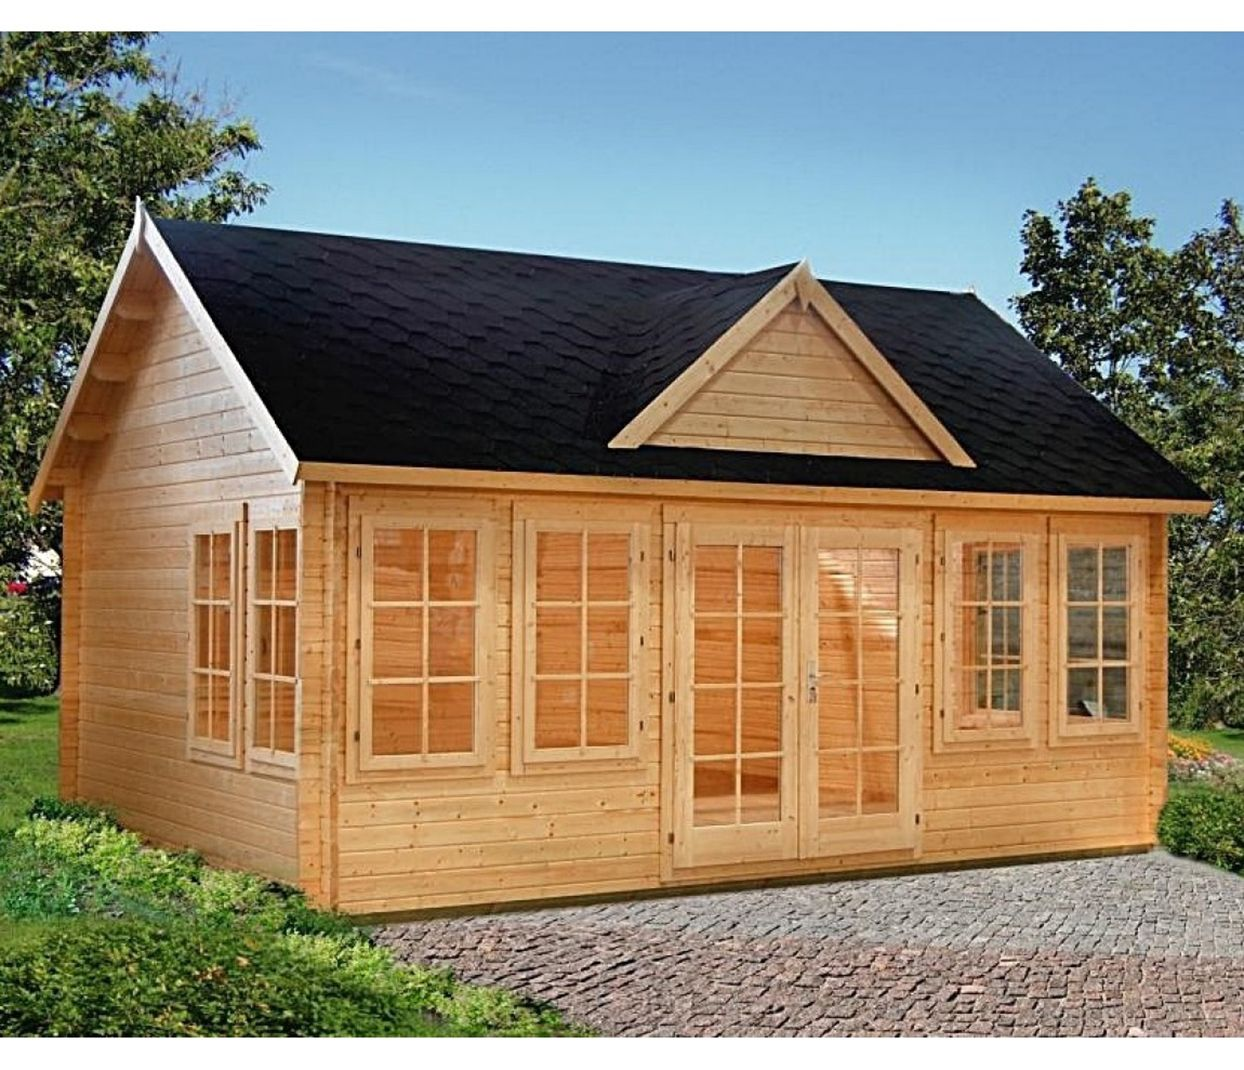 8 tiny house kits you can buy on amazonand build yourself